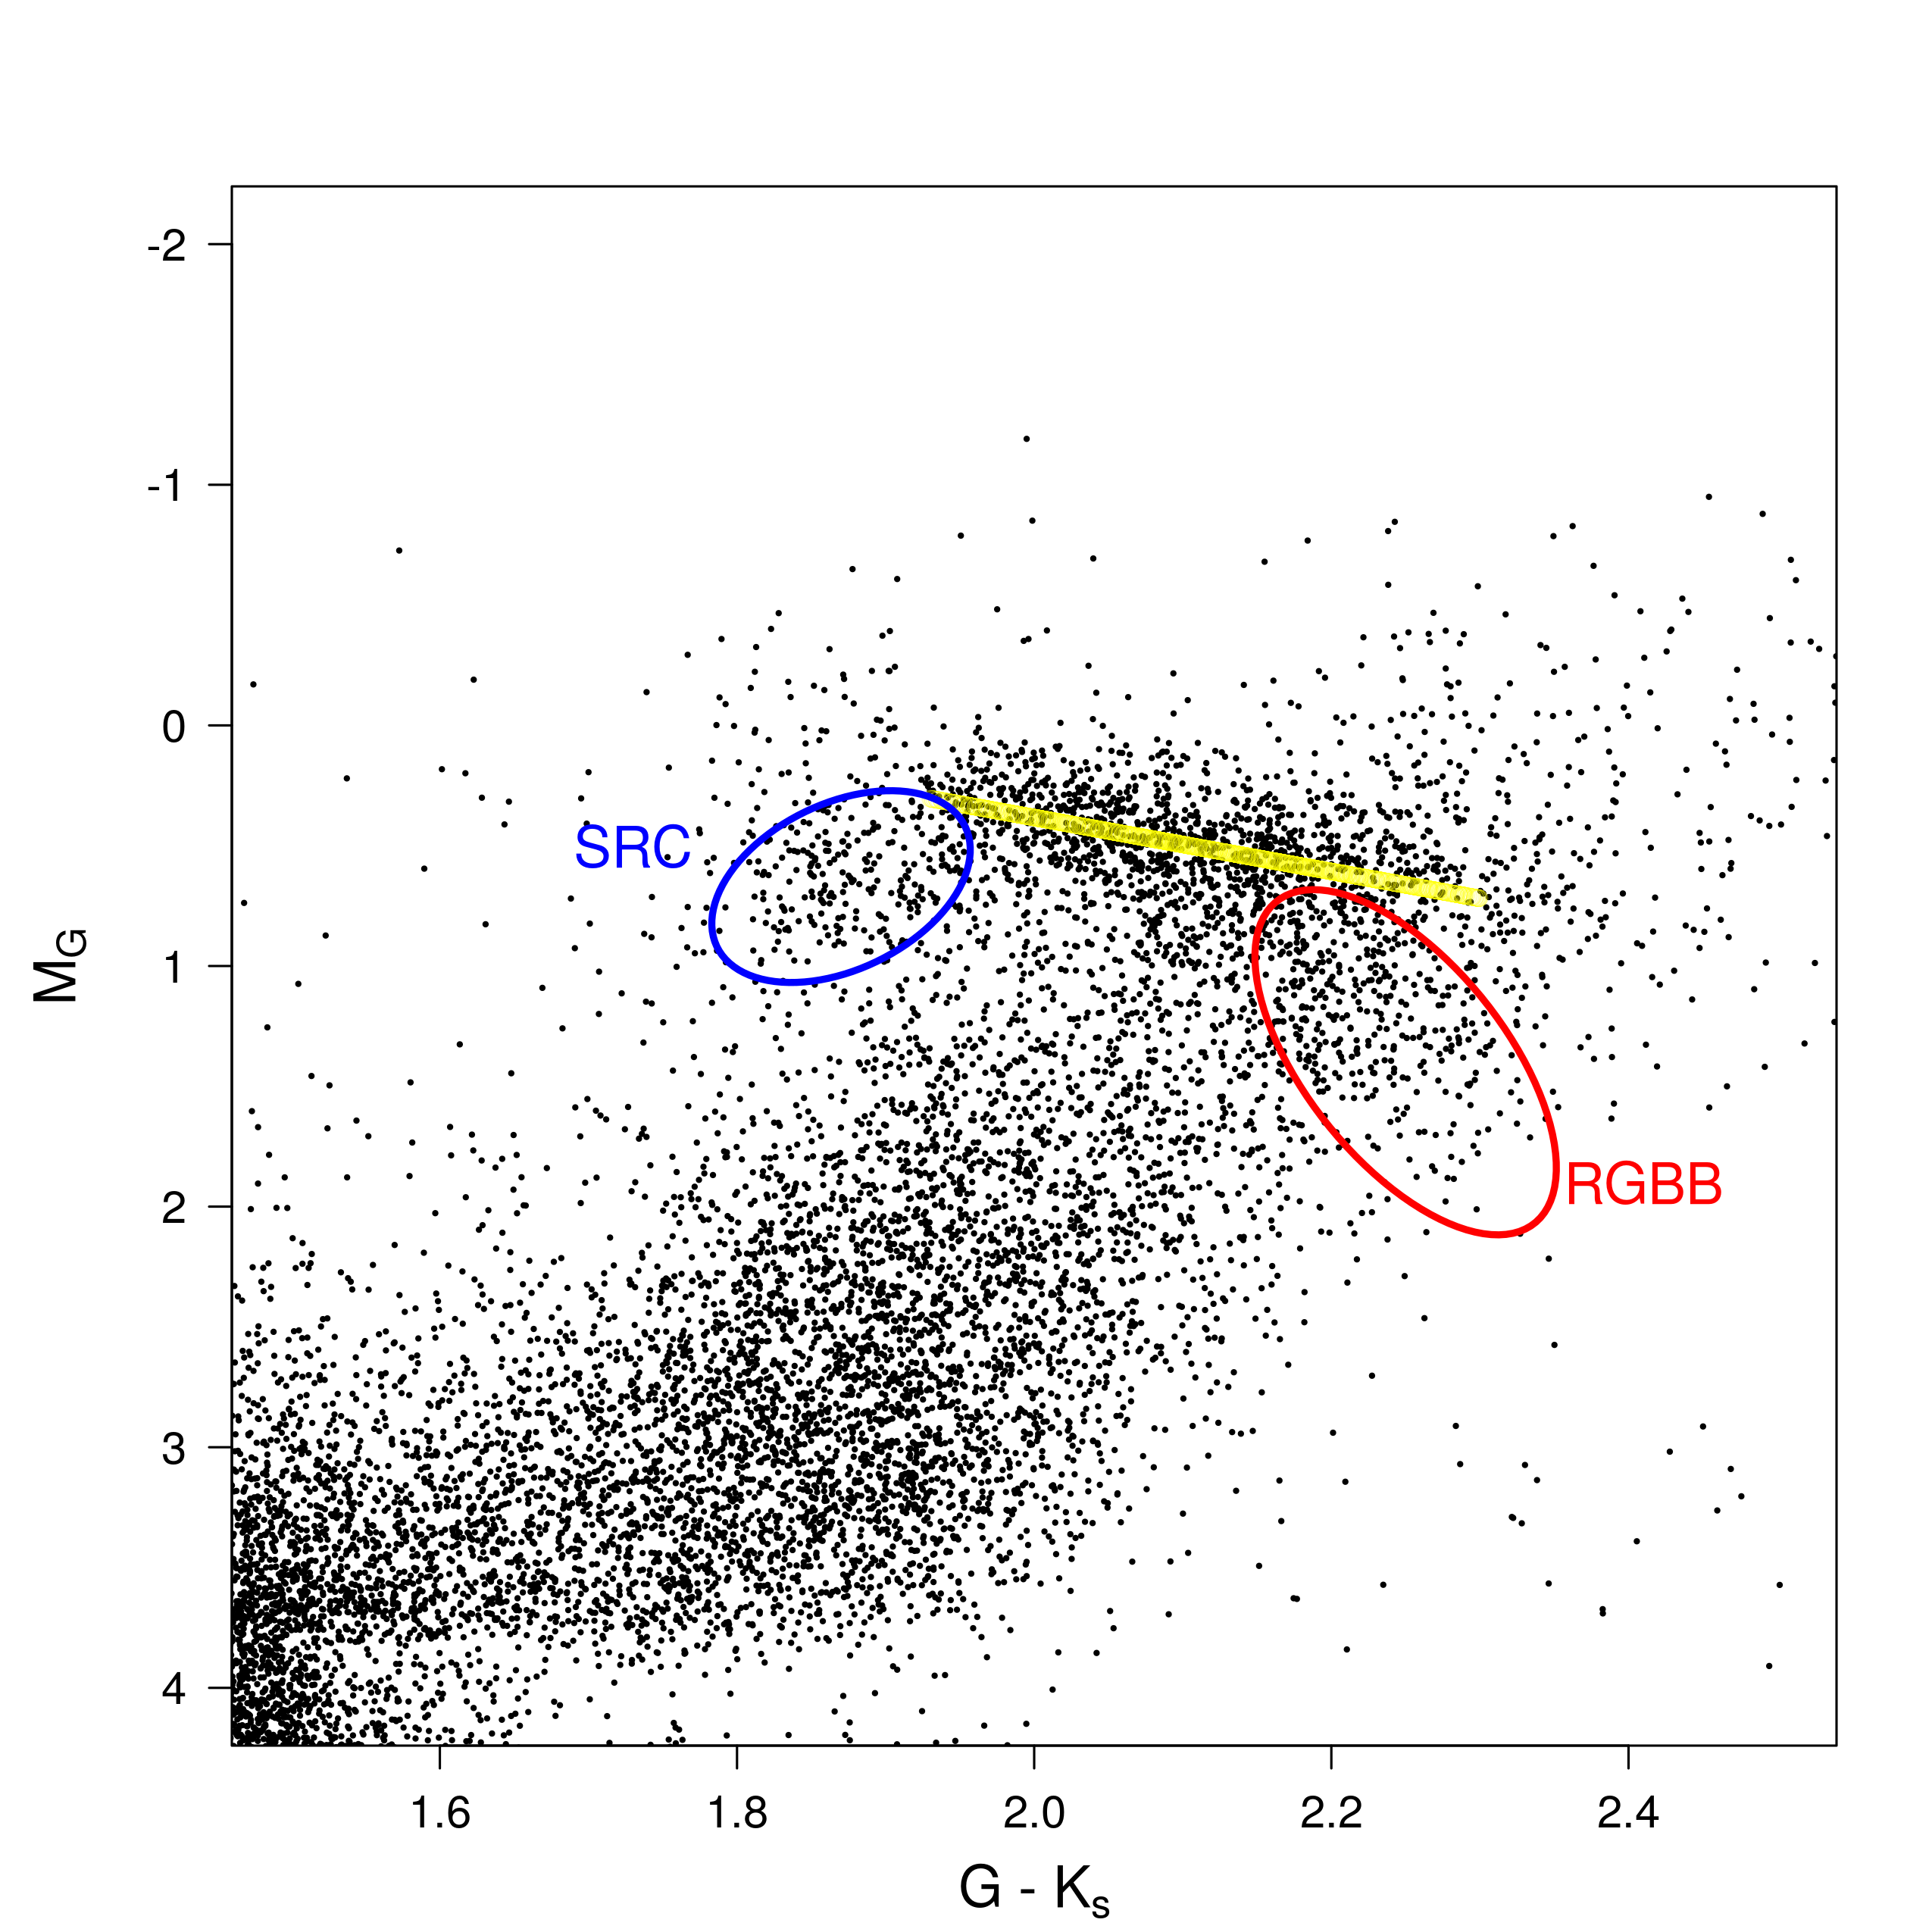 Iow20171020 cosmos figure 2 zoom on the red clump region in blue the secondary red clump in red the red giant branch bump the yellow line corresponds to the obtained pooptronica Choice Image